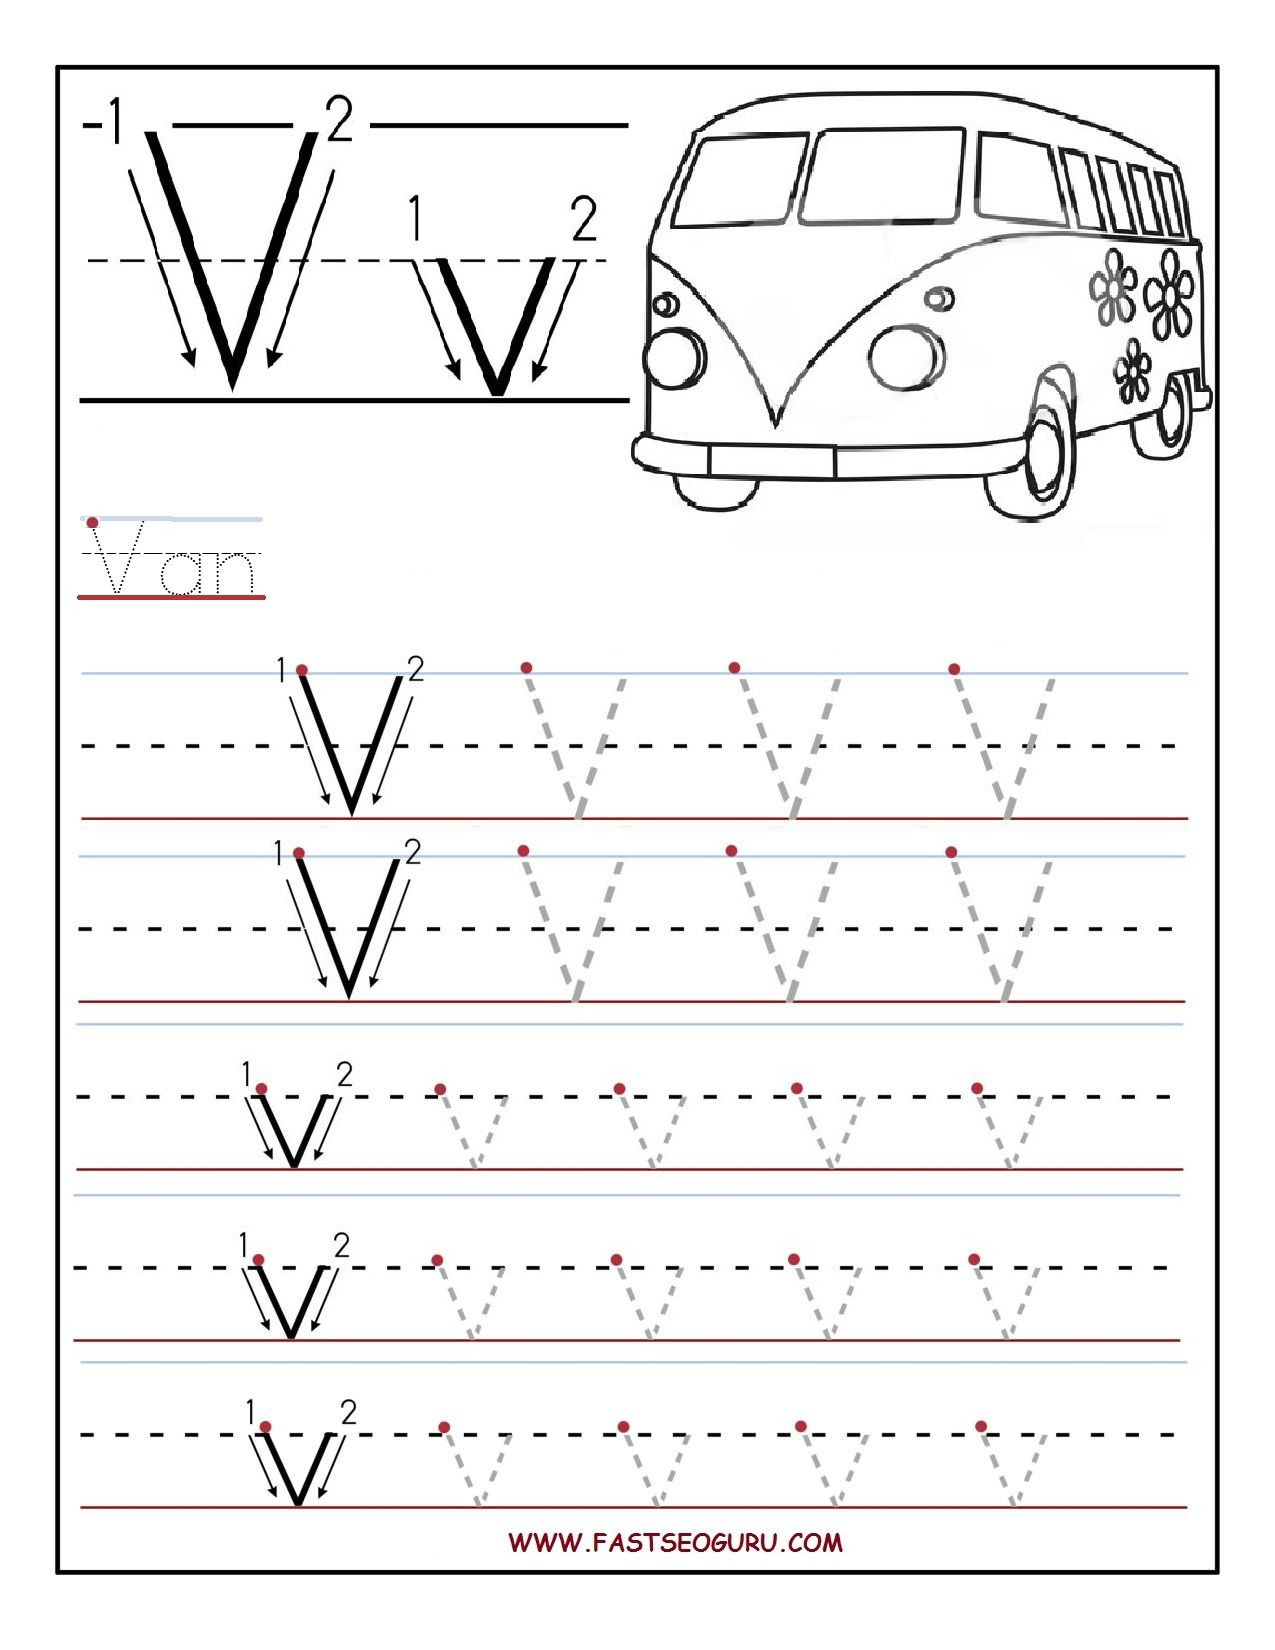 printable letter v tracing worksheets for preschool alphabet pinterest tracing worksheets. Black Bedroom Furniture Sets. Home Design Ideas